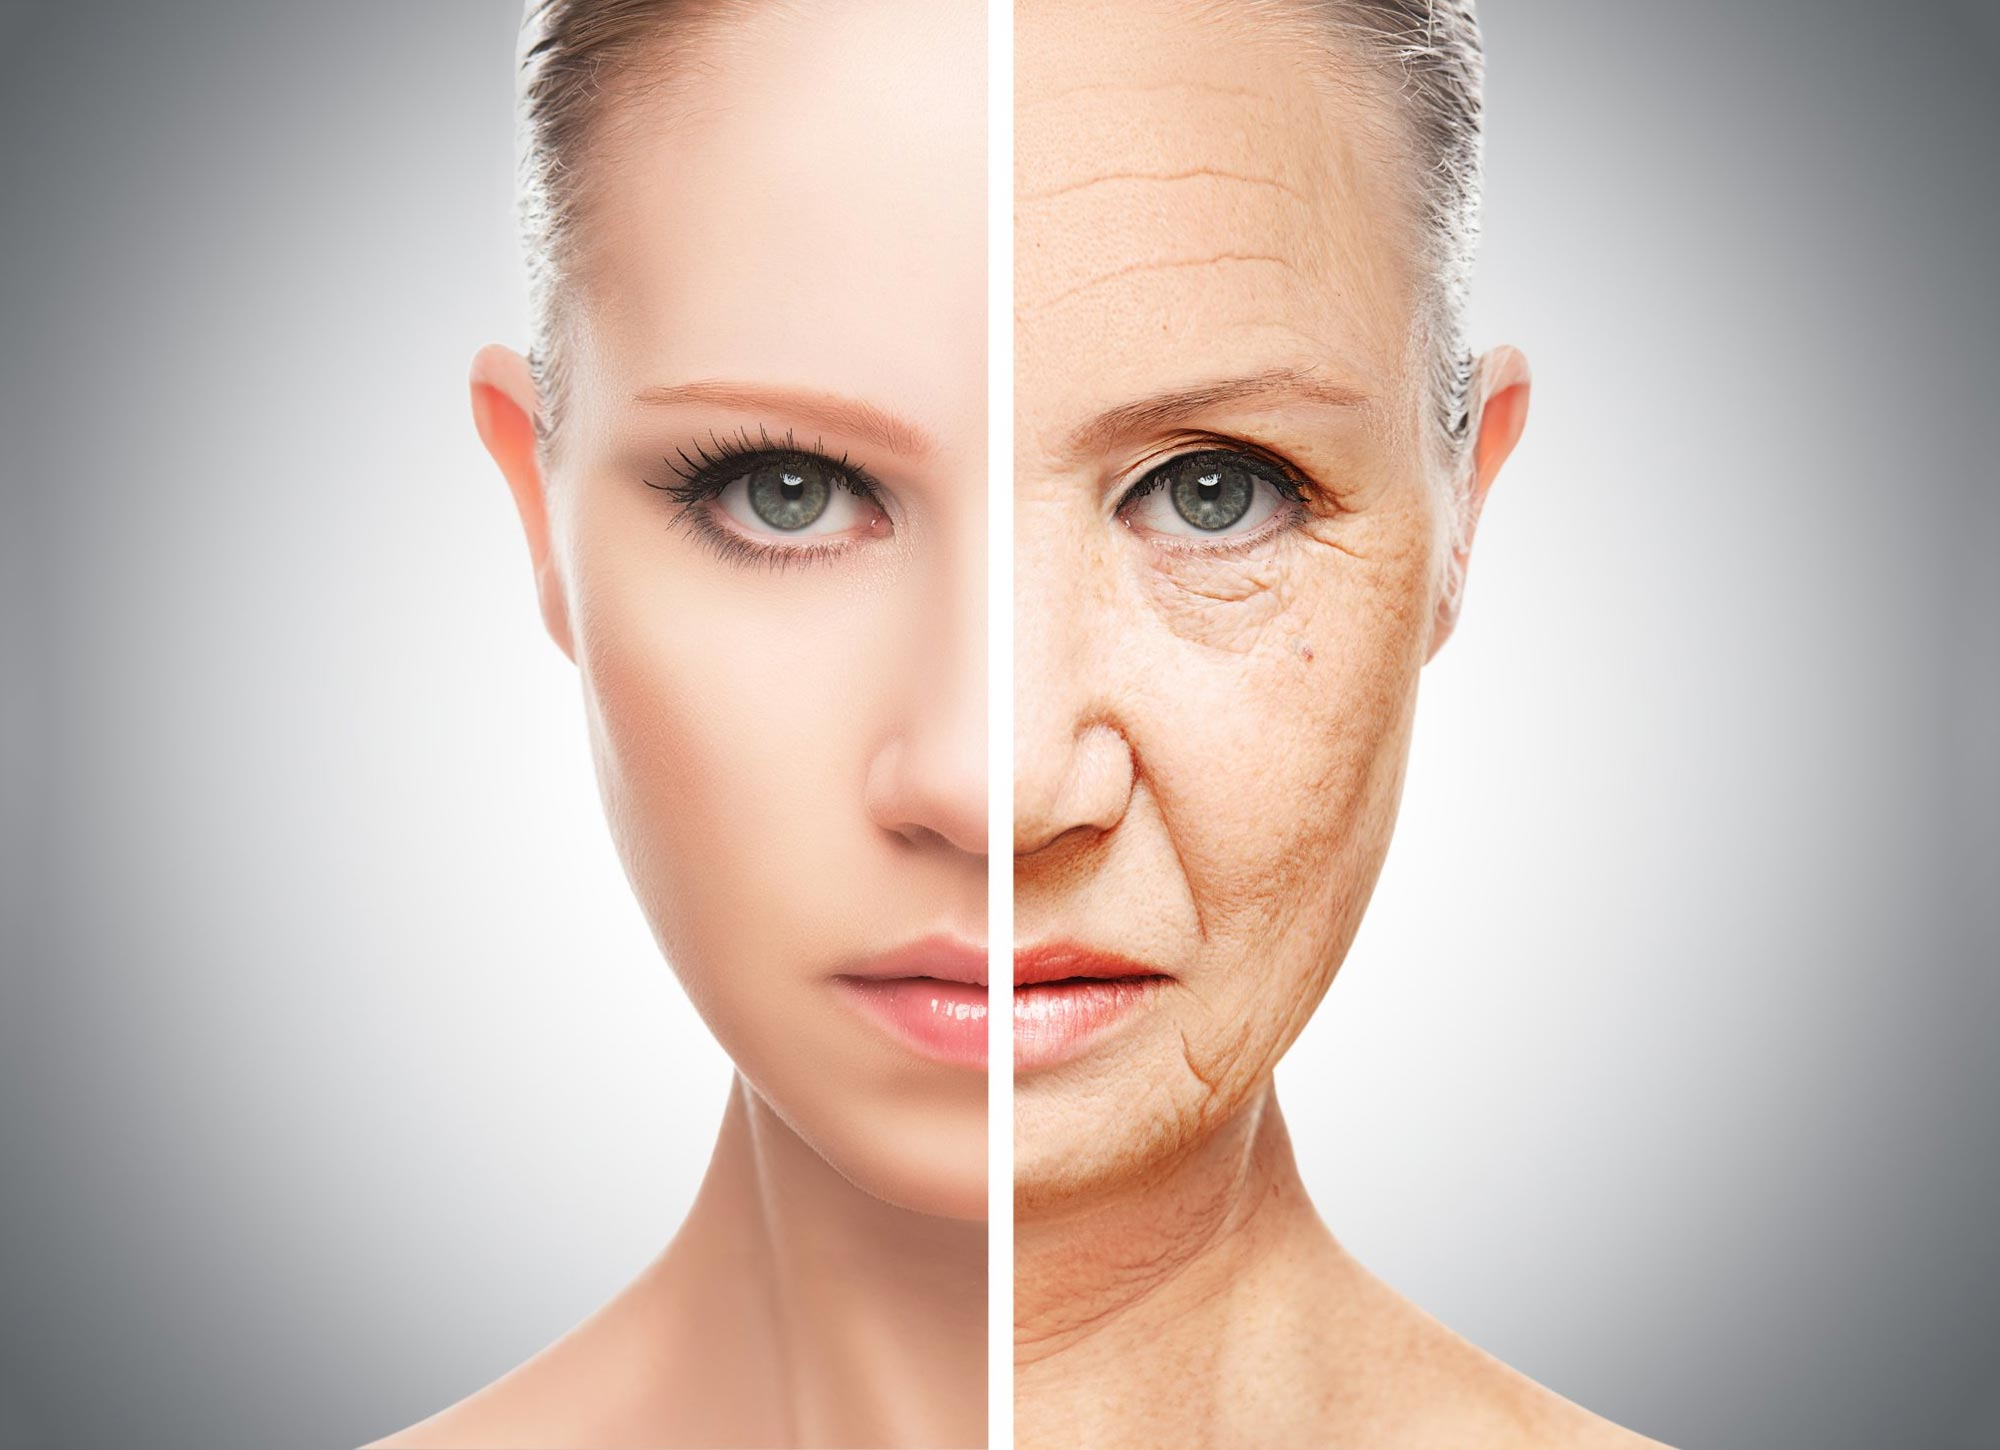 Researchers Solve Anti-aging Mystery – Identify Gene Responsible for Cellular Aging - SciTechDaily